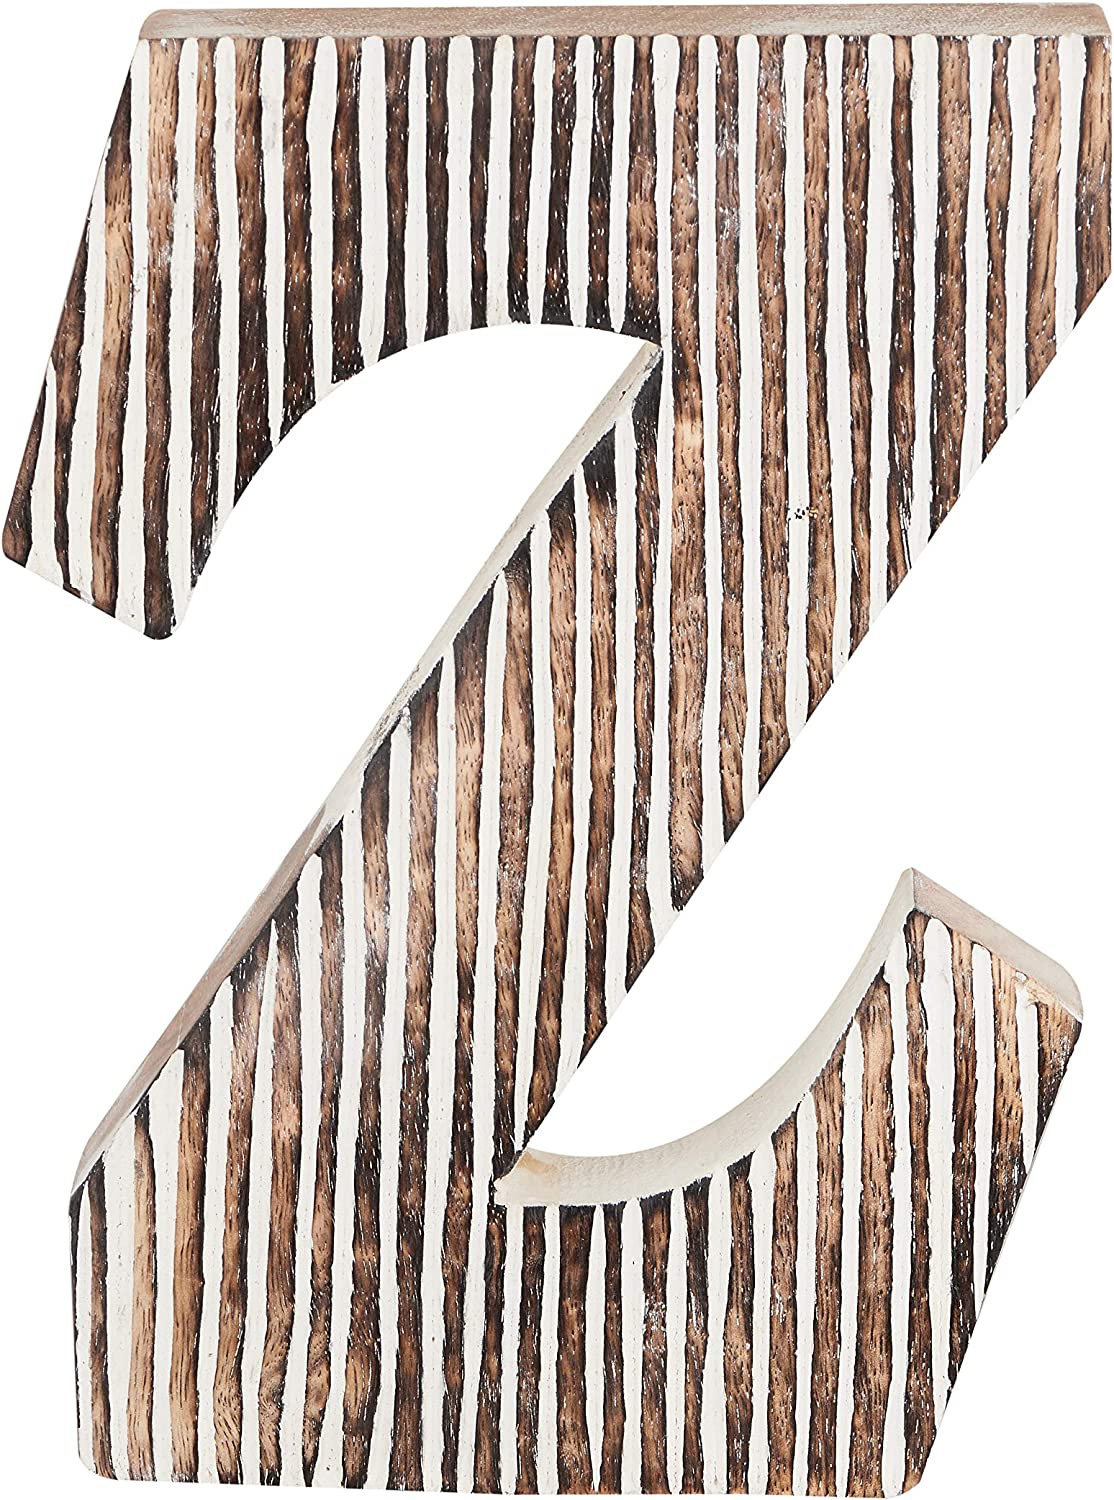 Decorative Wood Letter Z | Standing and Hanging Wooden Alphabets Block for Wall Decor | Shabby Chic Wood Block Letter for Wall Table | Alphabet Letter for Home Bedroom Birthday Housewarming Party